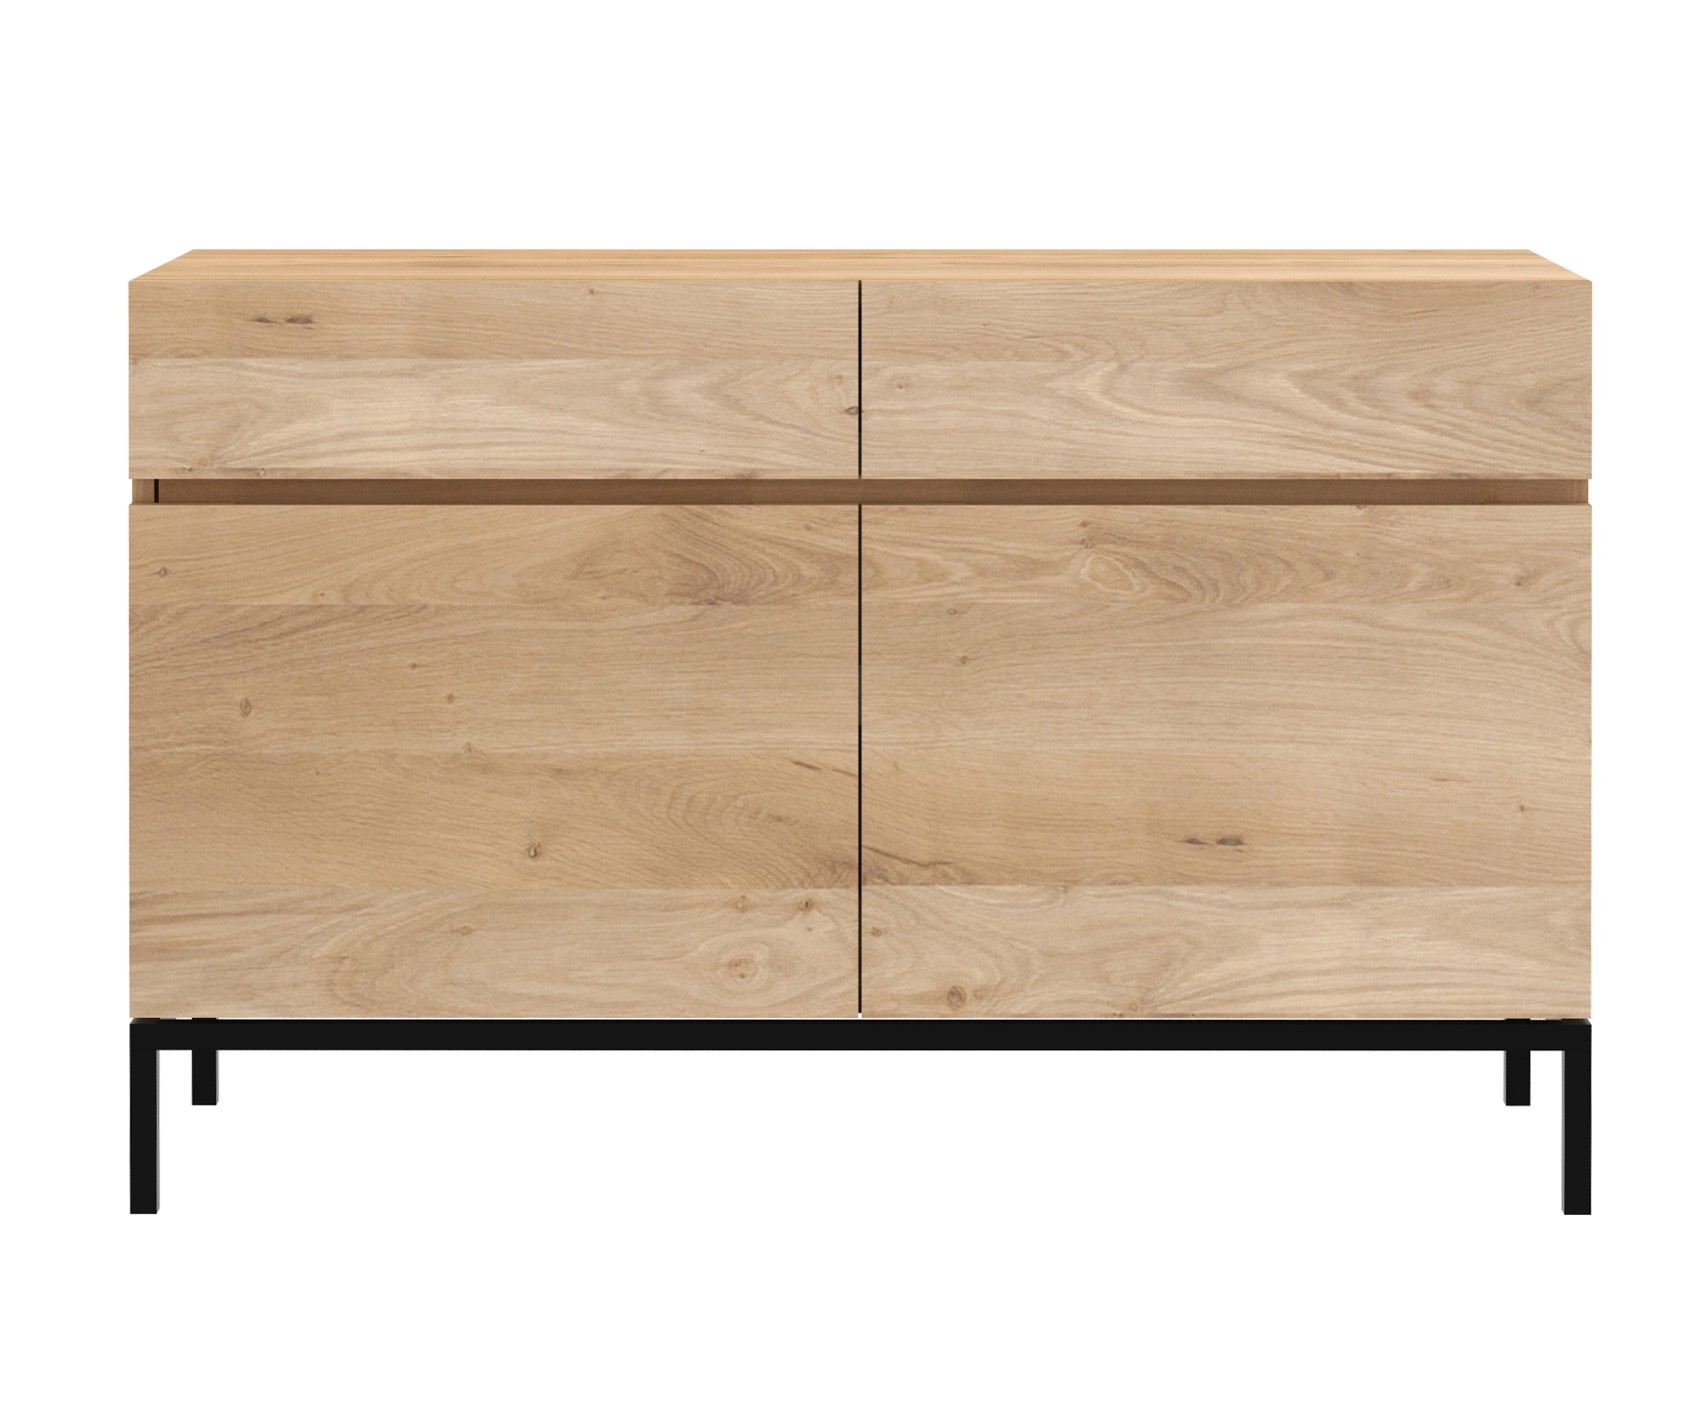 Ethnicraft Meuble Tv Ethnicraft Ligna Sideboard Funktion Alley